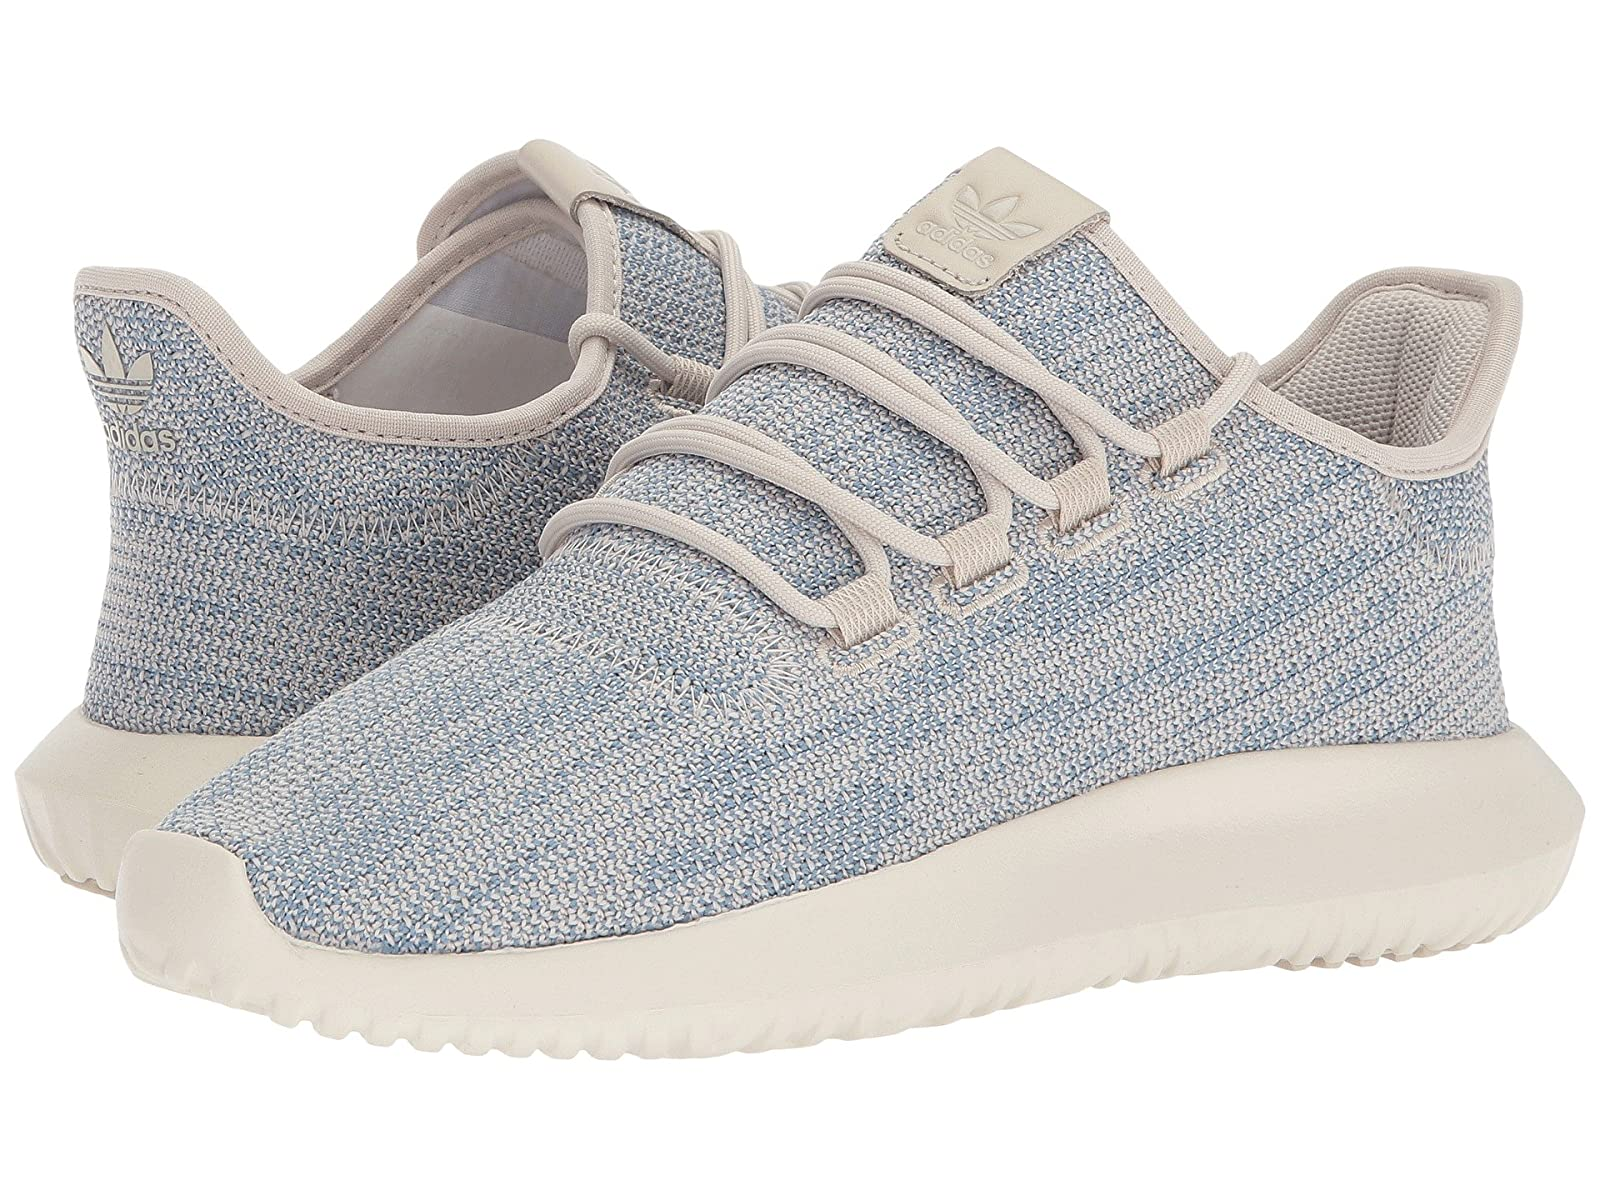 adidas Originals Tubular Shadow CKStylish and characteristic shoes